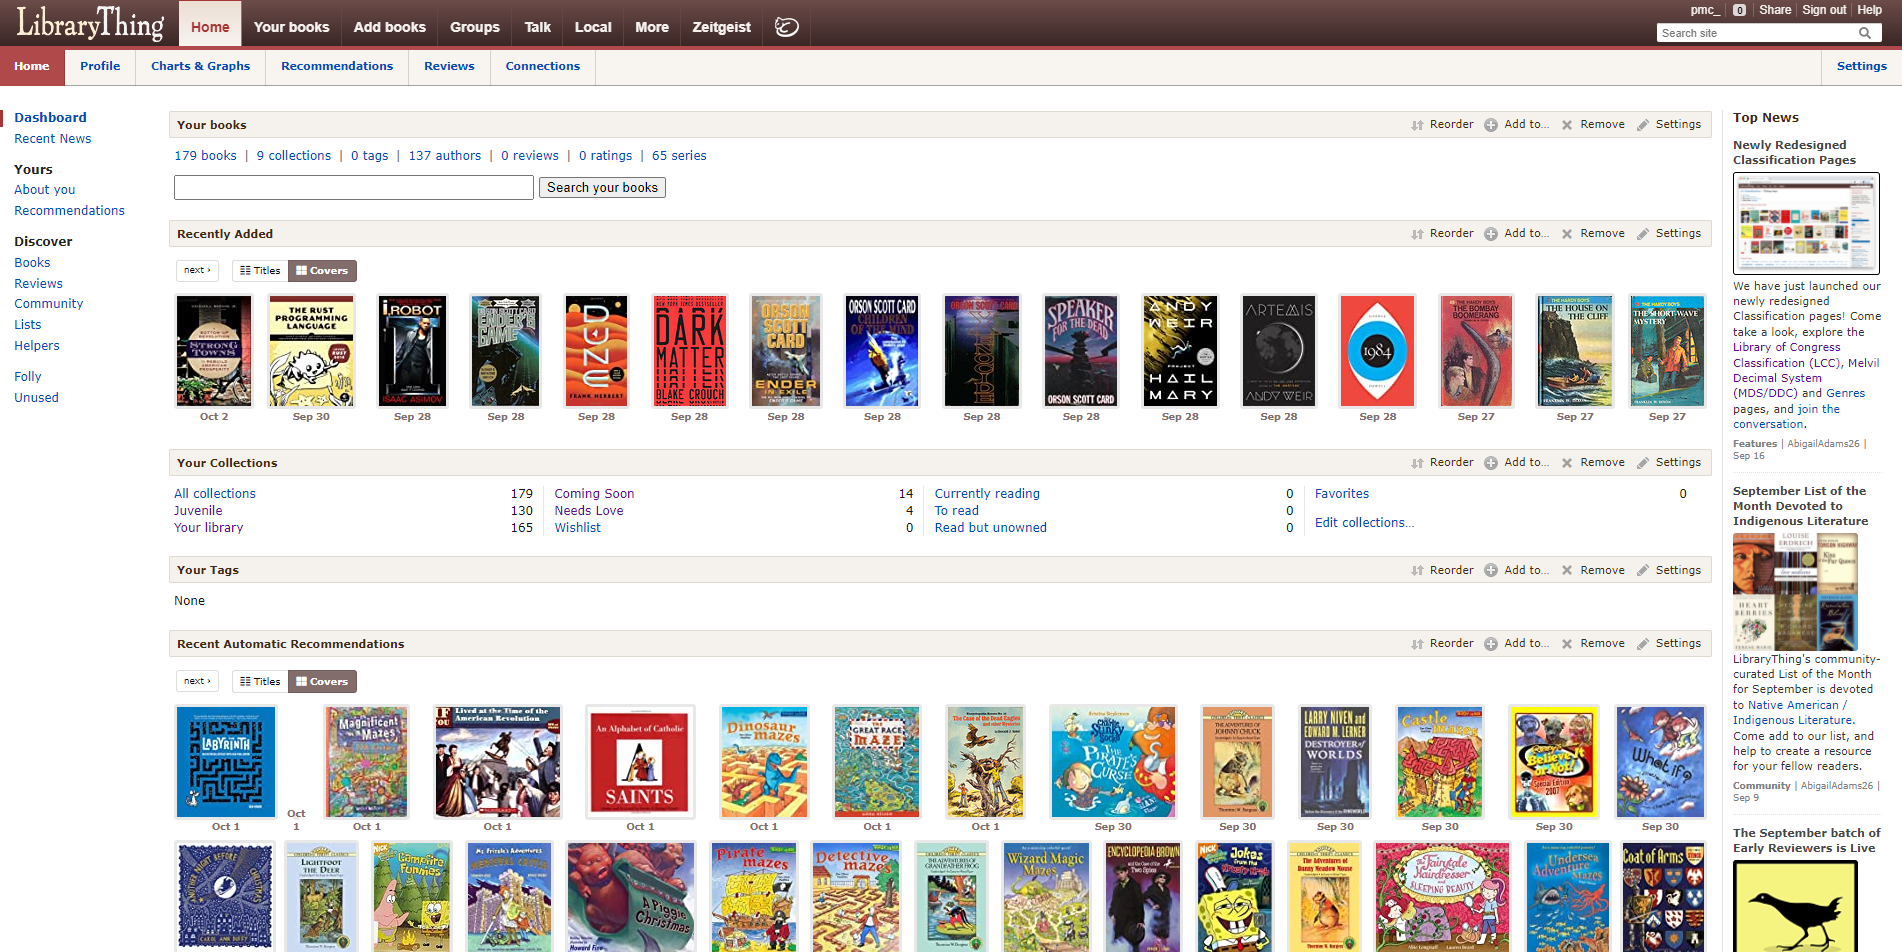 A screenshot of librarything.com/home with me logged in, showing my catalog and recommendations for me